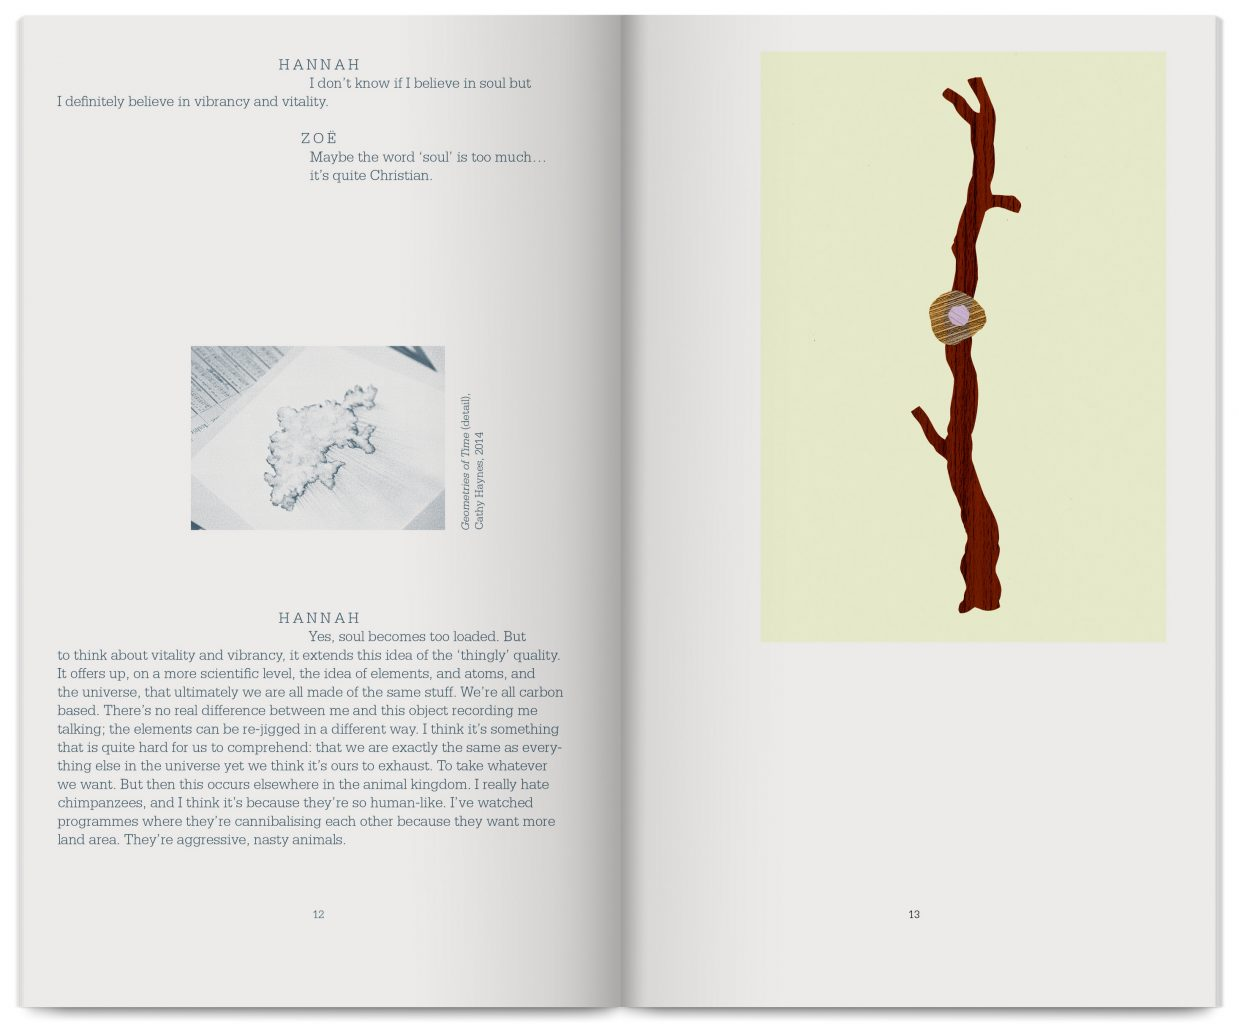 Overlay, publication edited by Jeremy Millar, published by White Rainbow Gallery, design by In the shade of a tree studio, founded by Sophie Demay and Maël Fournier Comte.